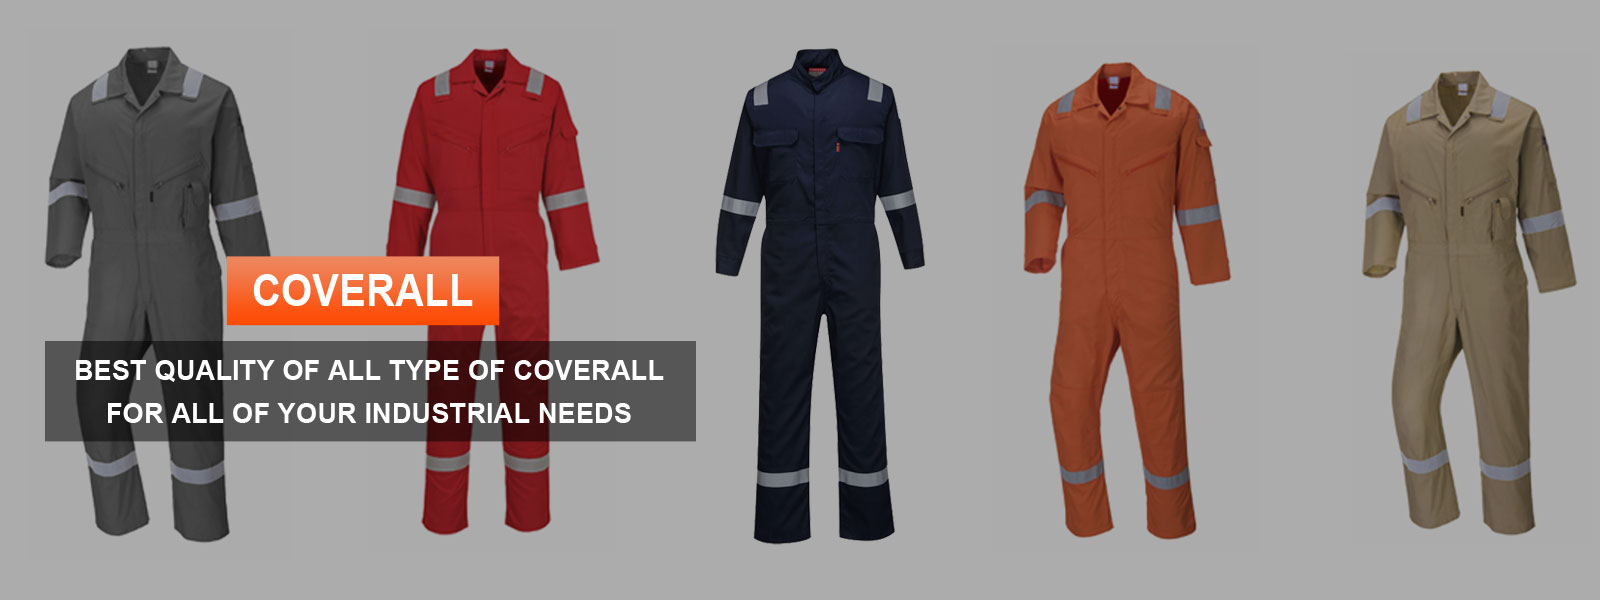 Coverall Manufacturers in Ukraine